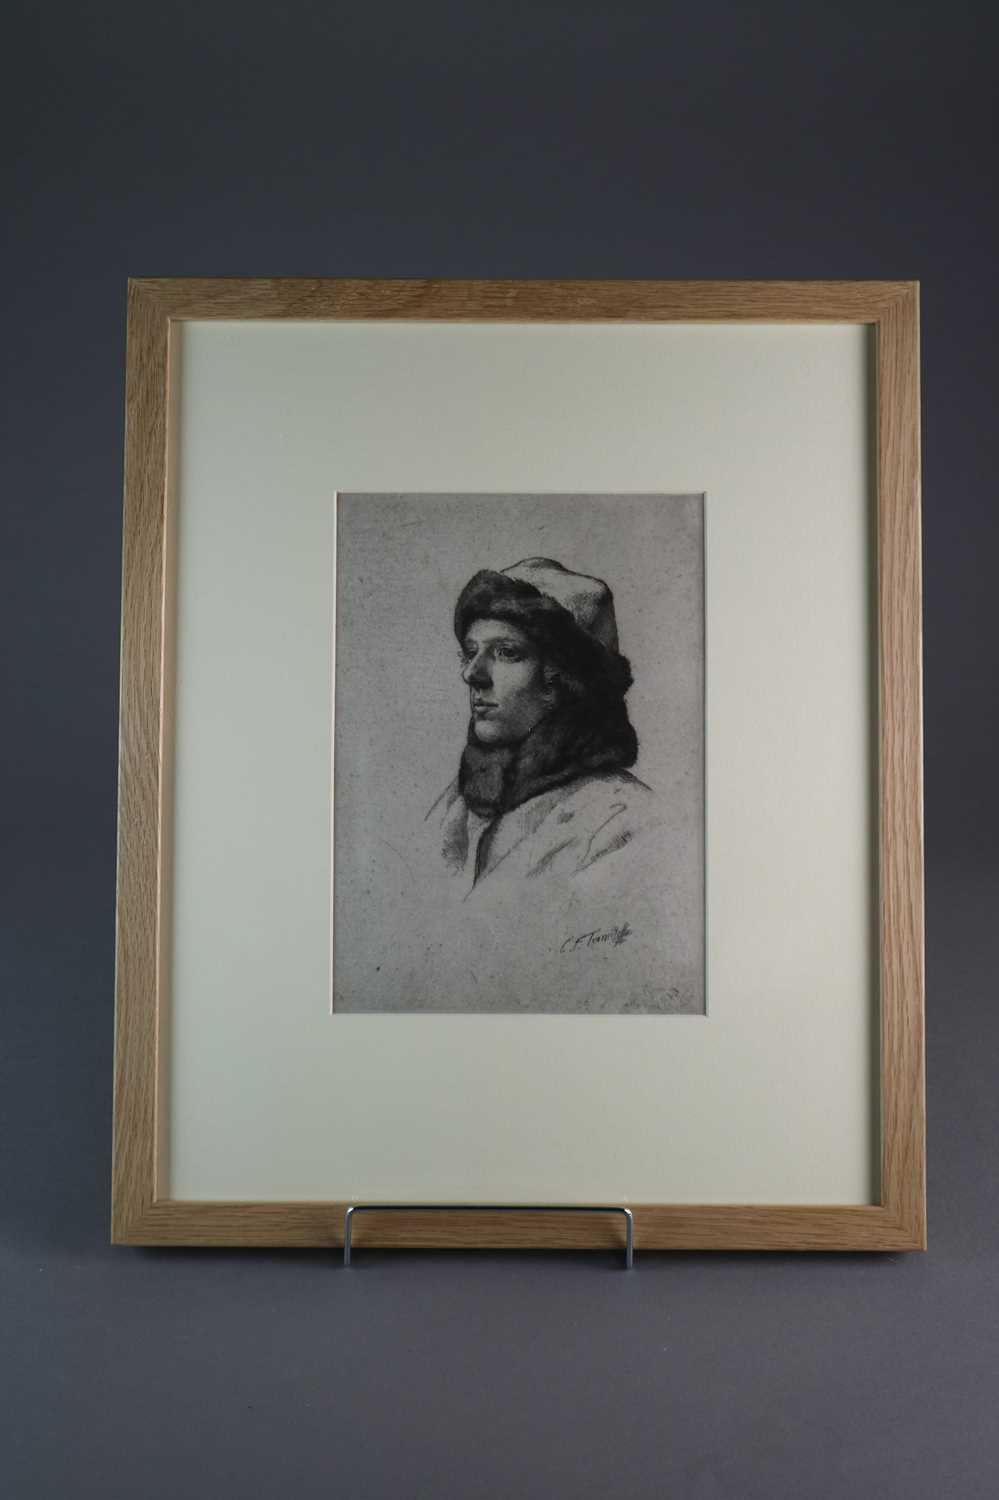 Charles Frederick Tunnicliffe OBE RA (1901-1979) Winifred - Image 3 of 4